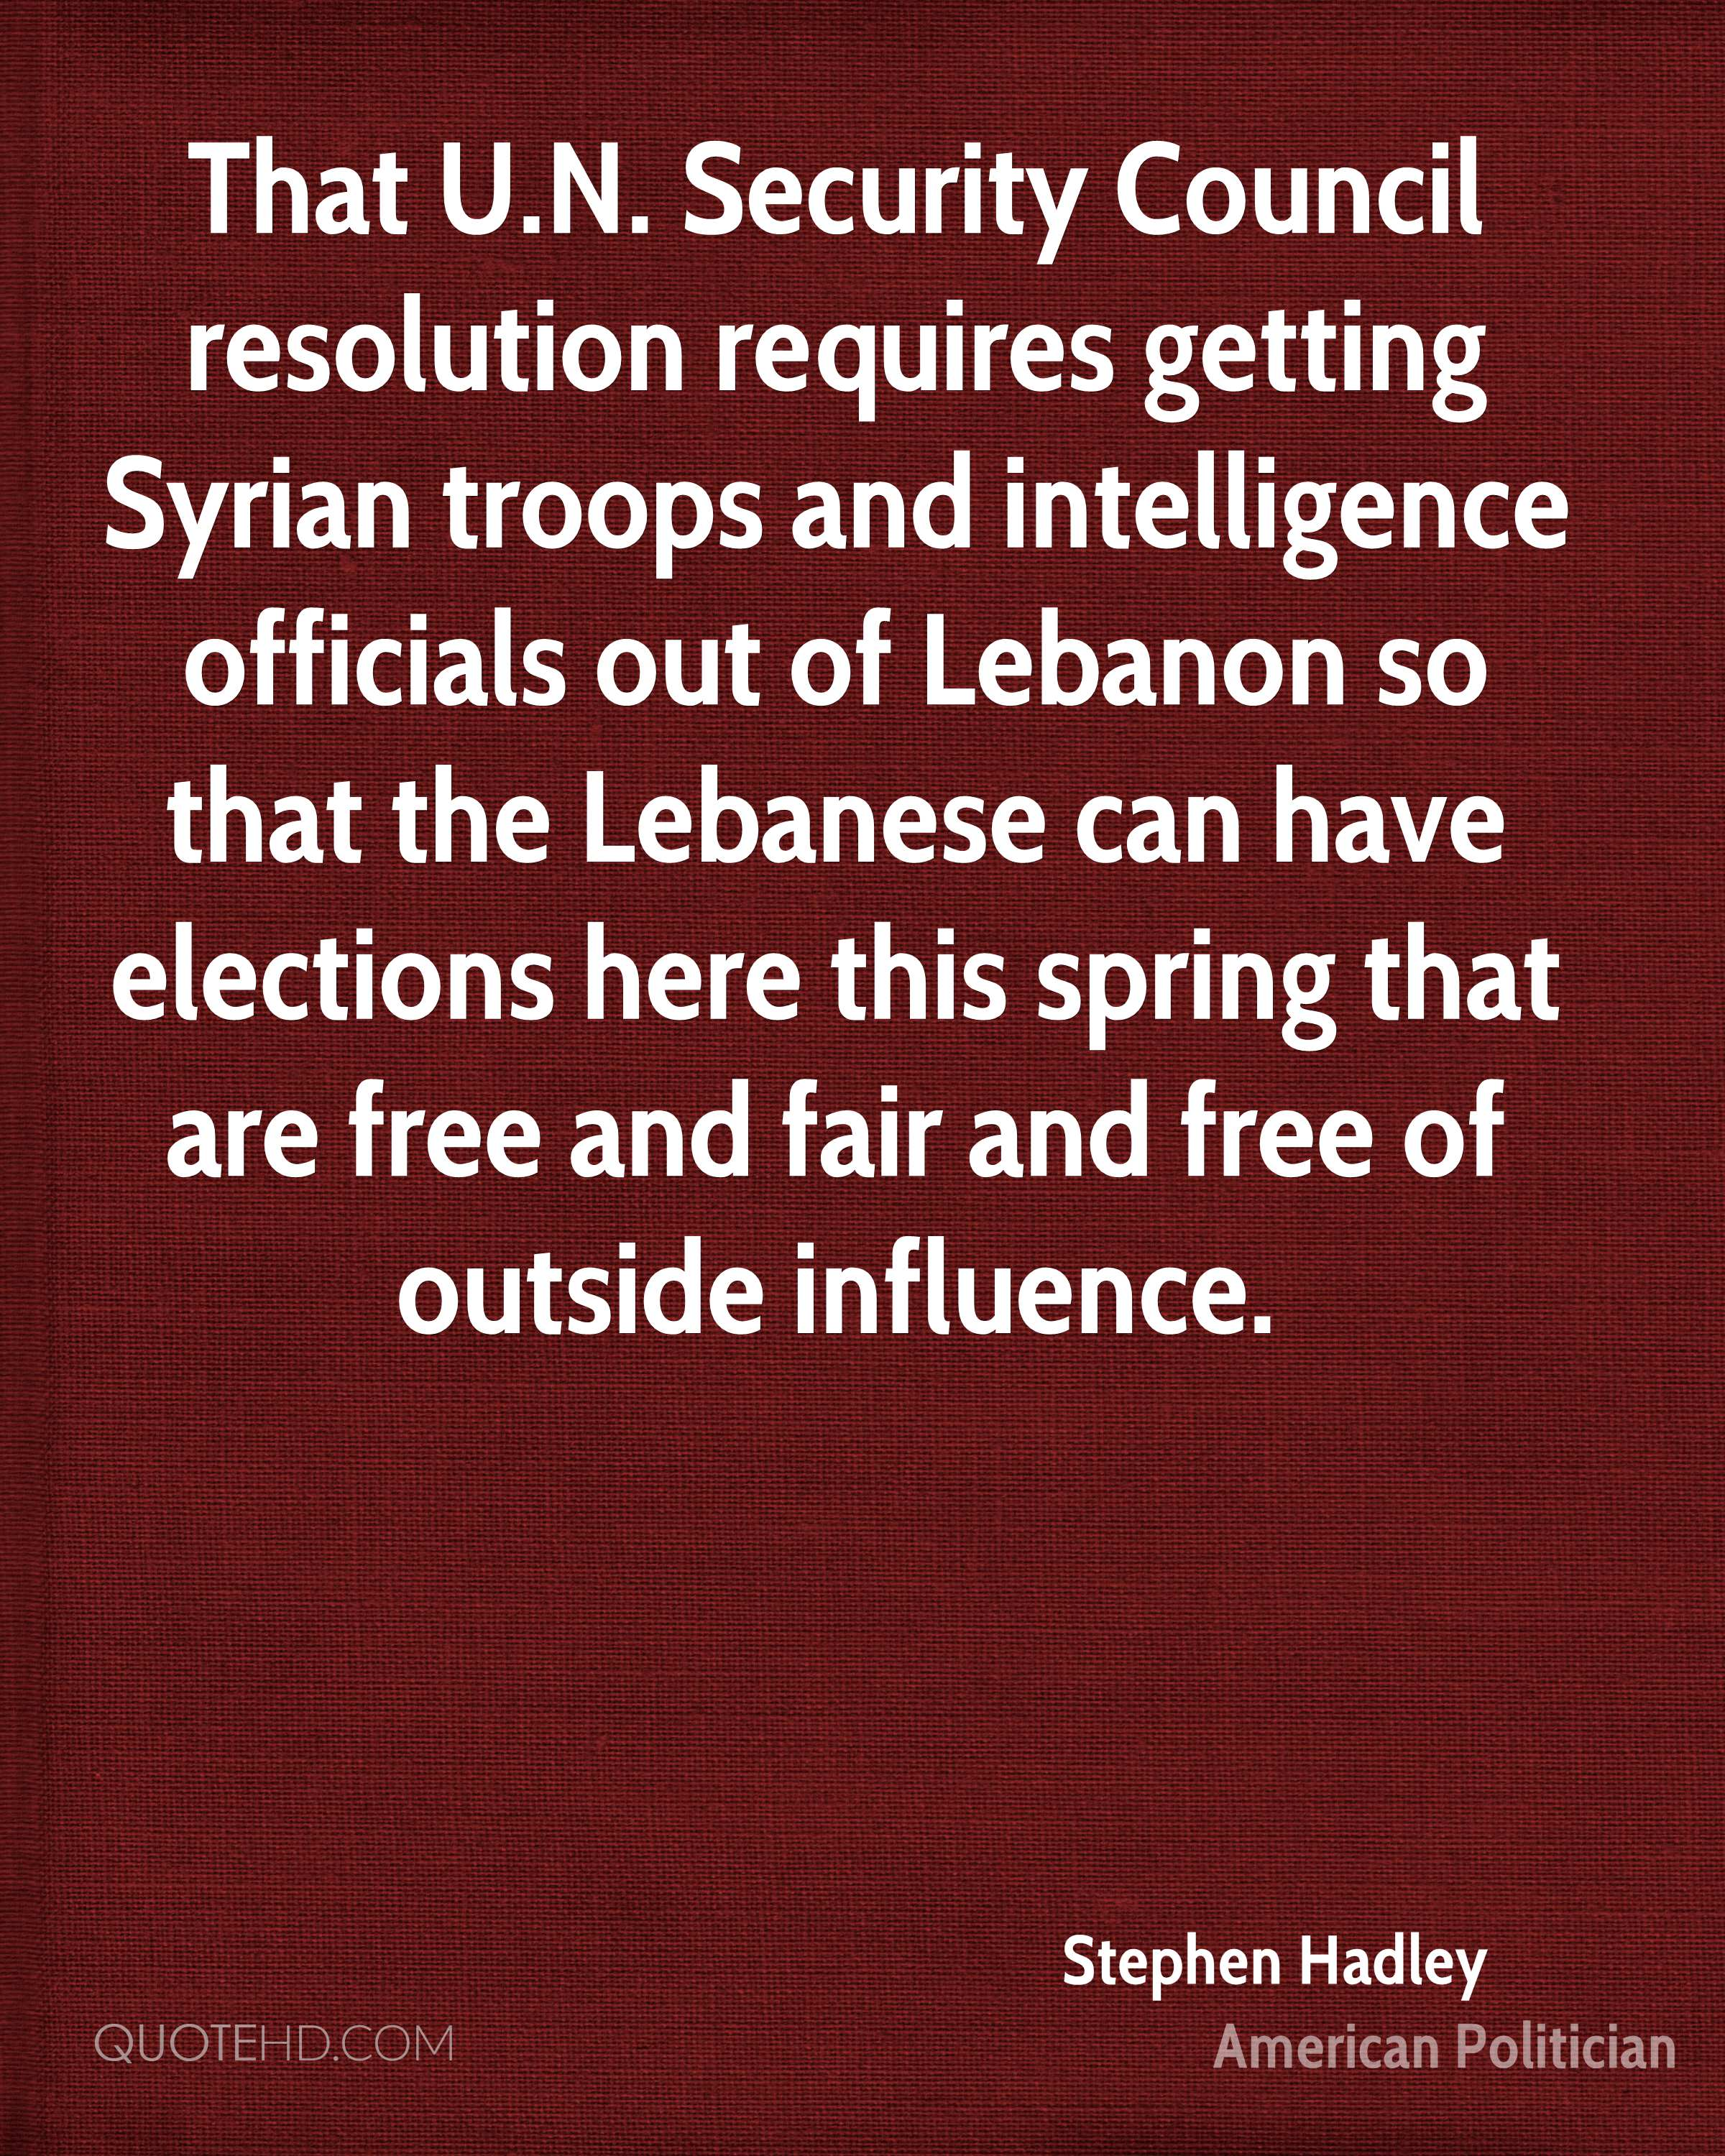 That U.N. Security Council resolution requires getting Syrian troops and intelligence officials out of Lebanon so that the Lebanese can have elections here this spring that are free and fair and free of outside influence.